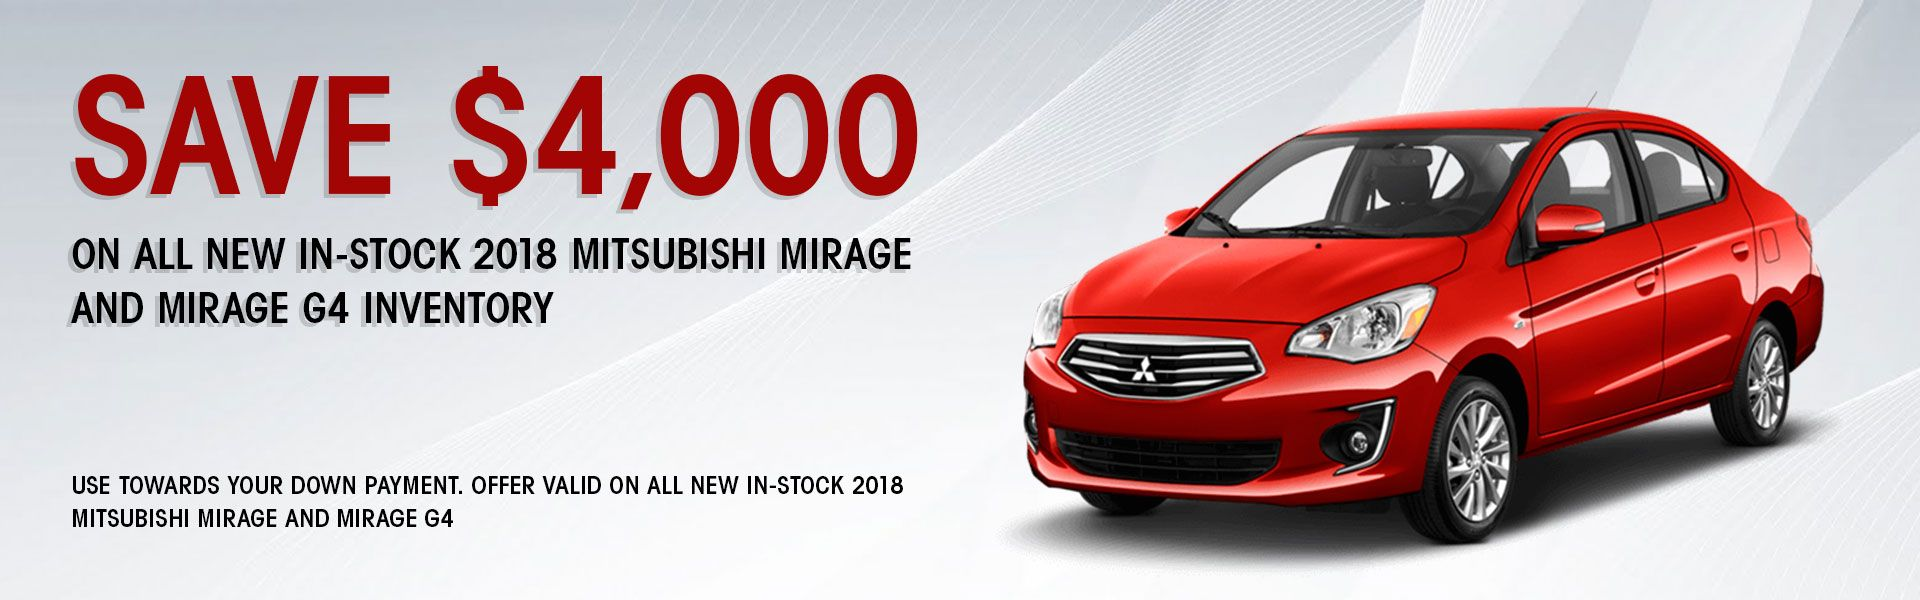 Cash For Junkers in Mentor OH | Mentor Mitsubishi